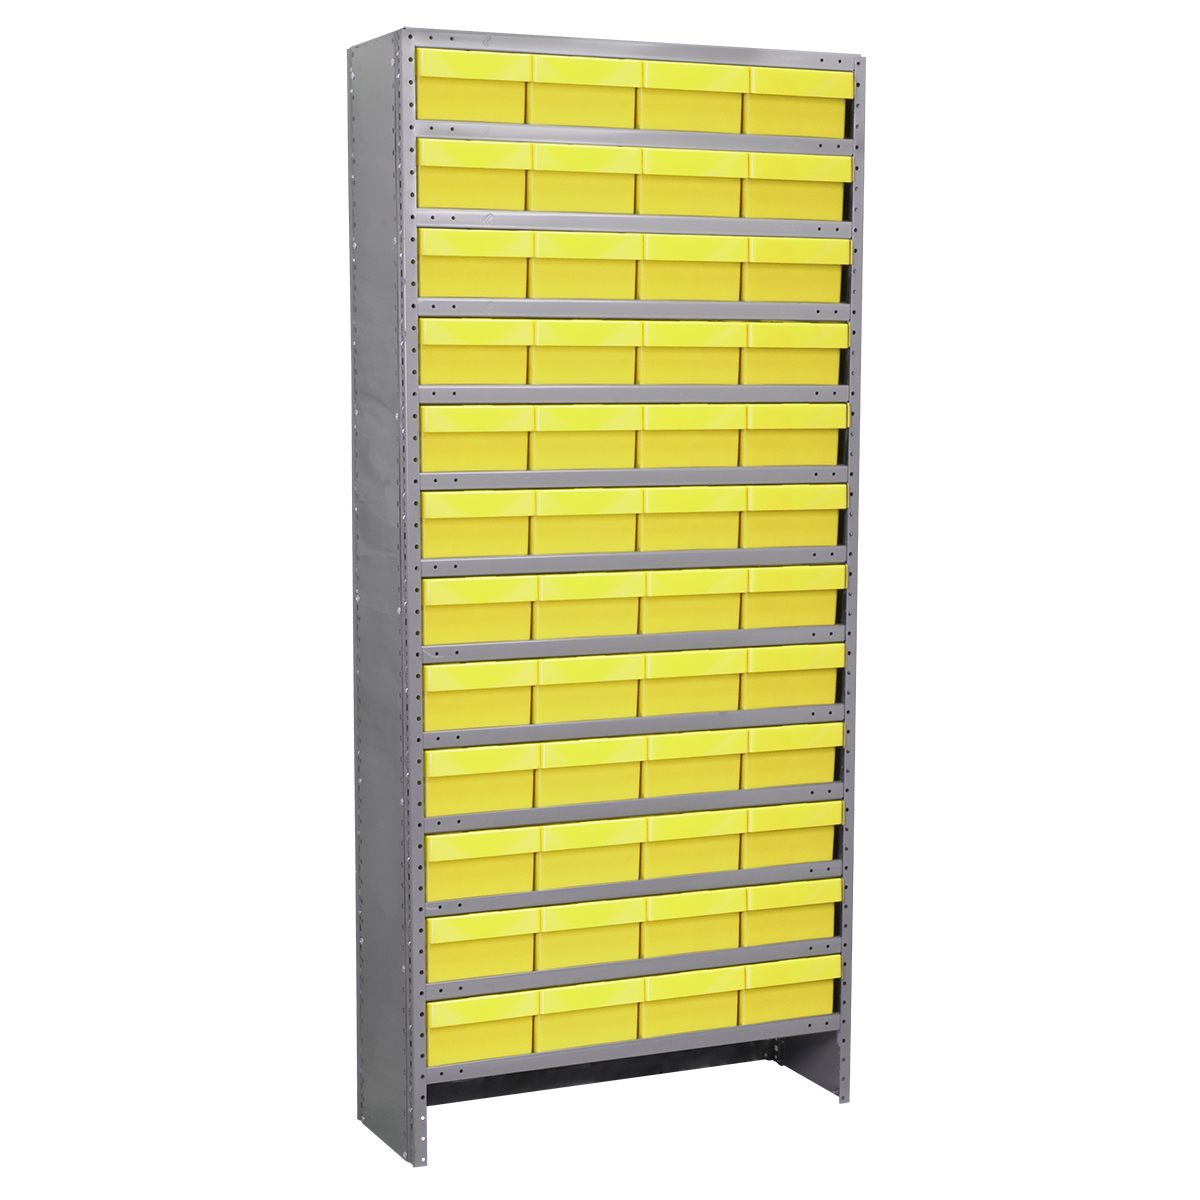 Enclosed Steel Shelving Kit, 12x36x79, 72 AkroDrawers, Gray/Yellow.  This item sold in carton quantities of 1.